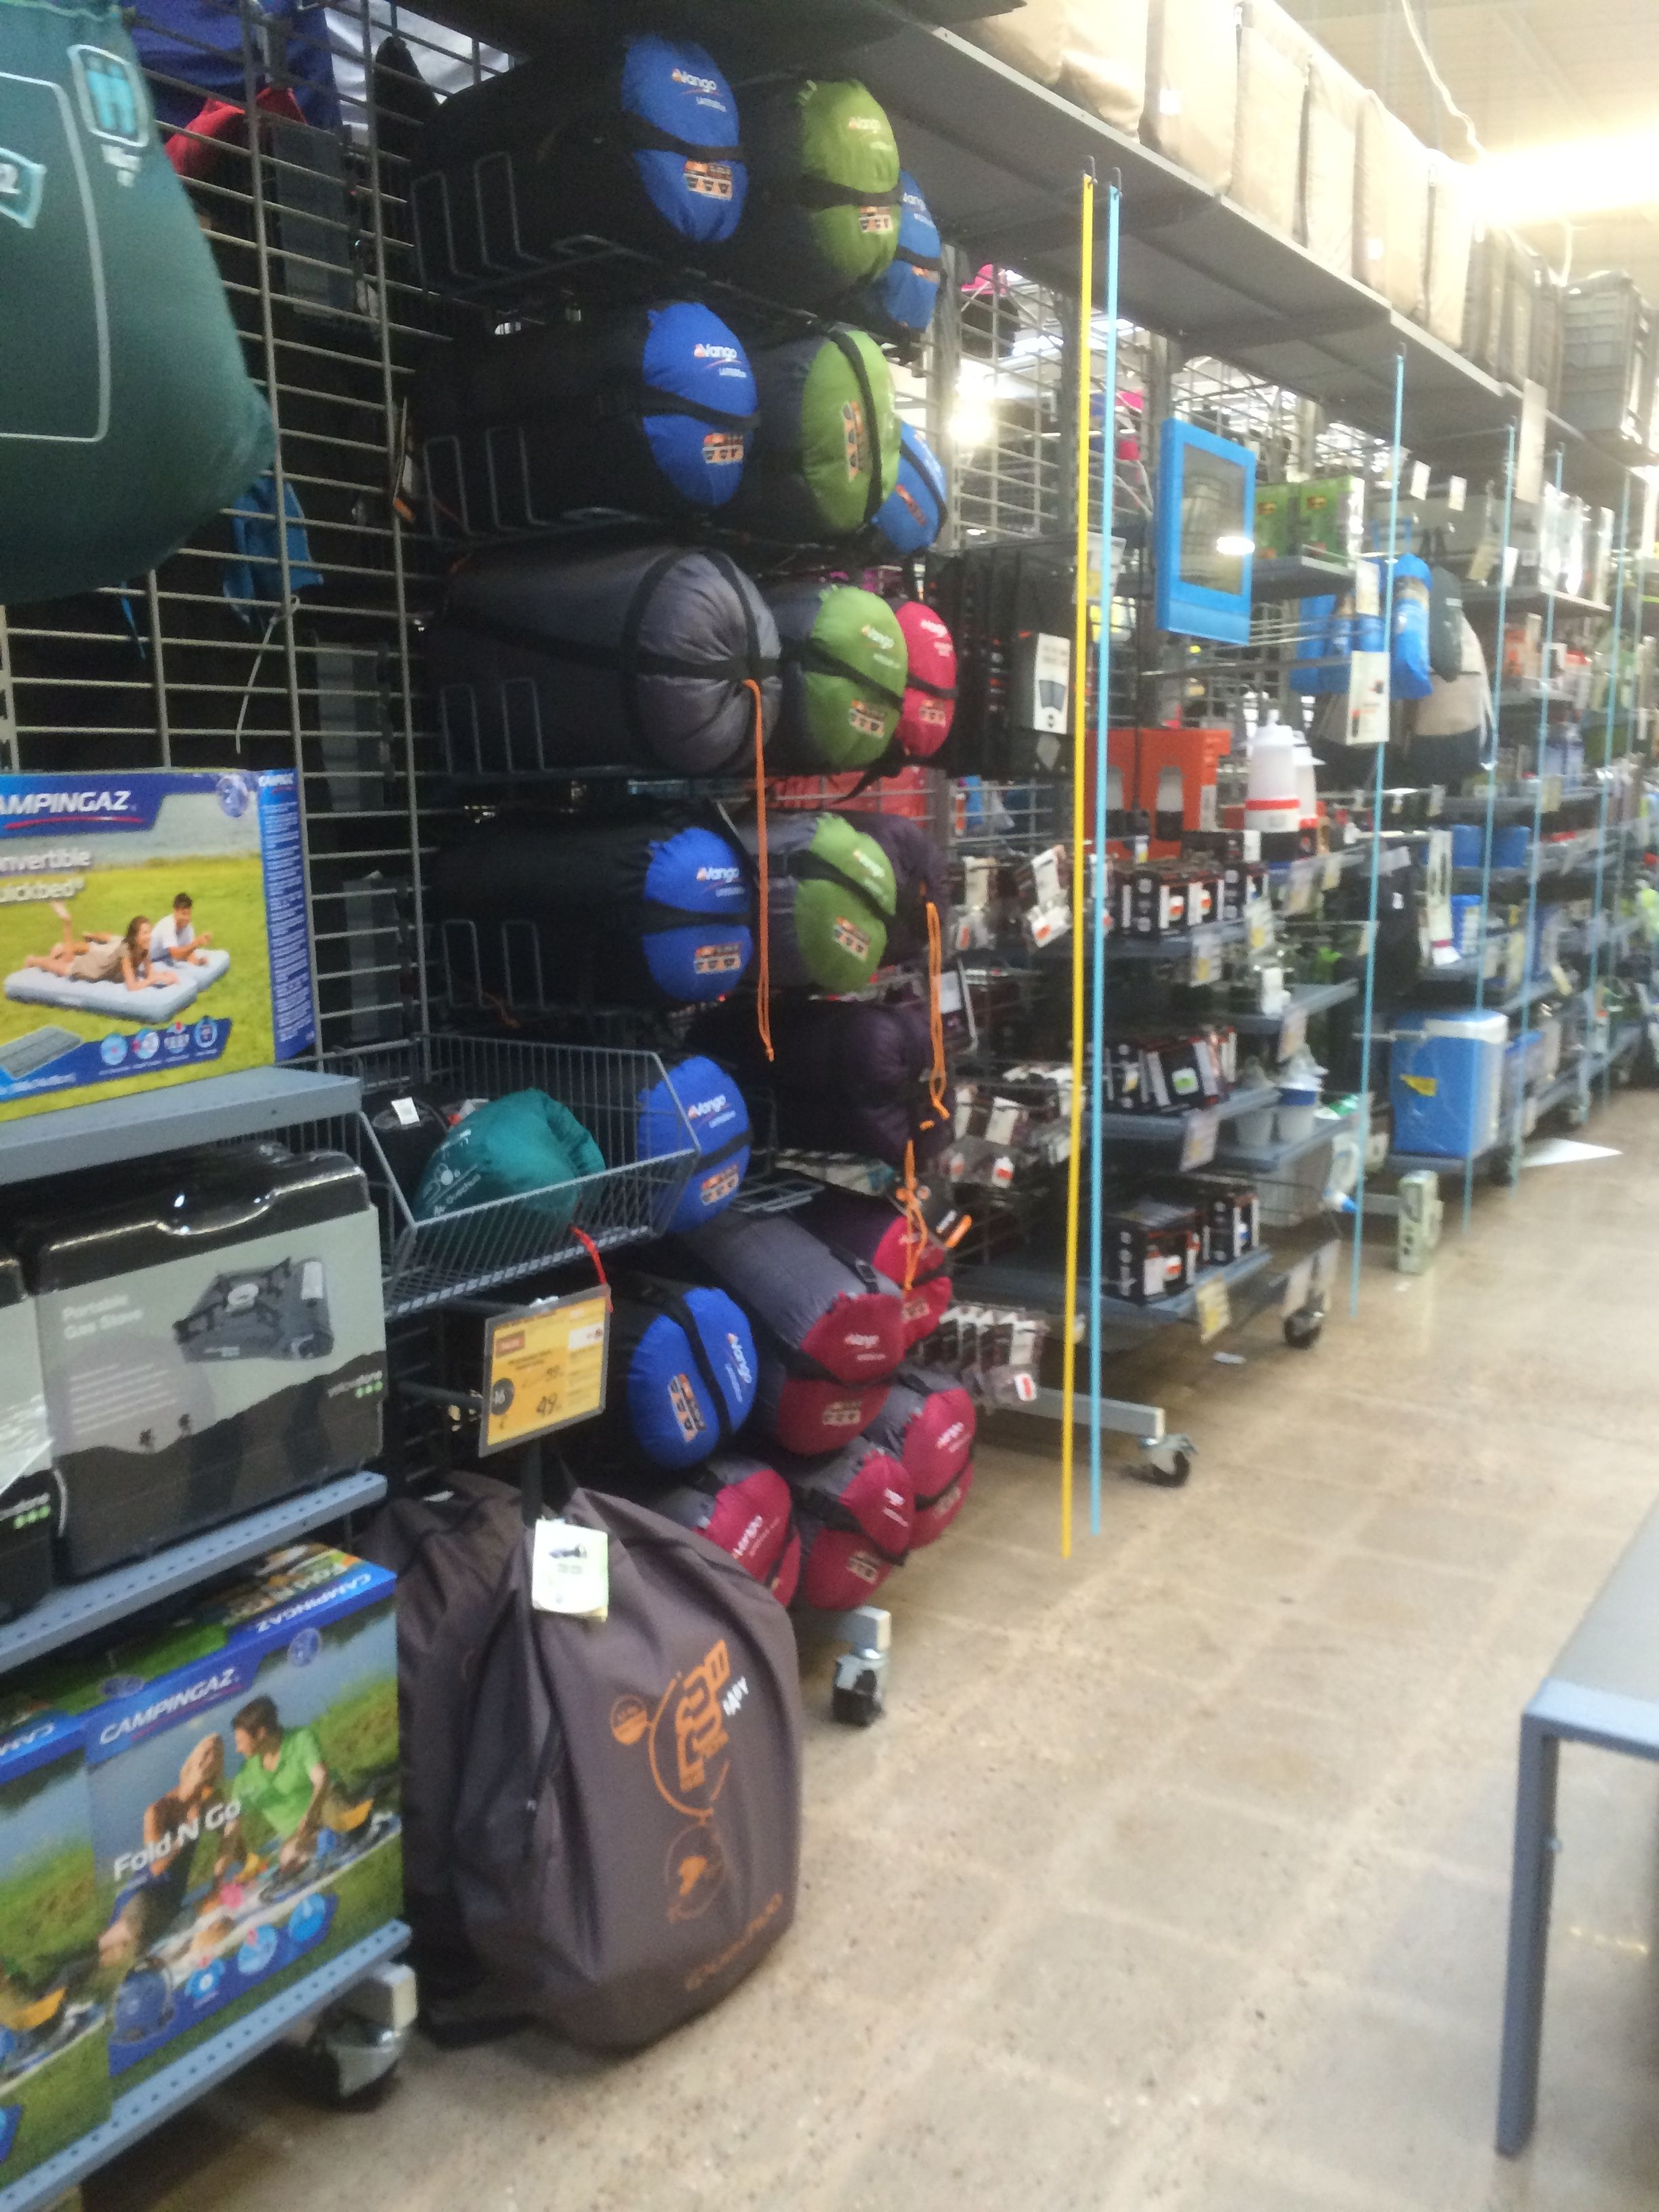 Decathlon - Sheffield - Outdoors - Sports - Disciplines - Activities - Customer Journey - Layout - Landscape - Visual Merchandising - www.clearretailgroup.eu